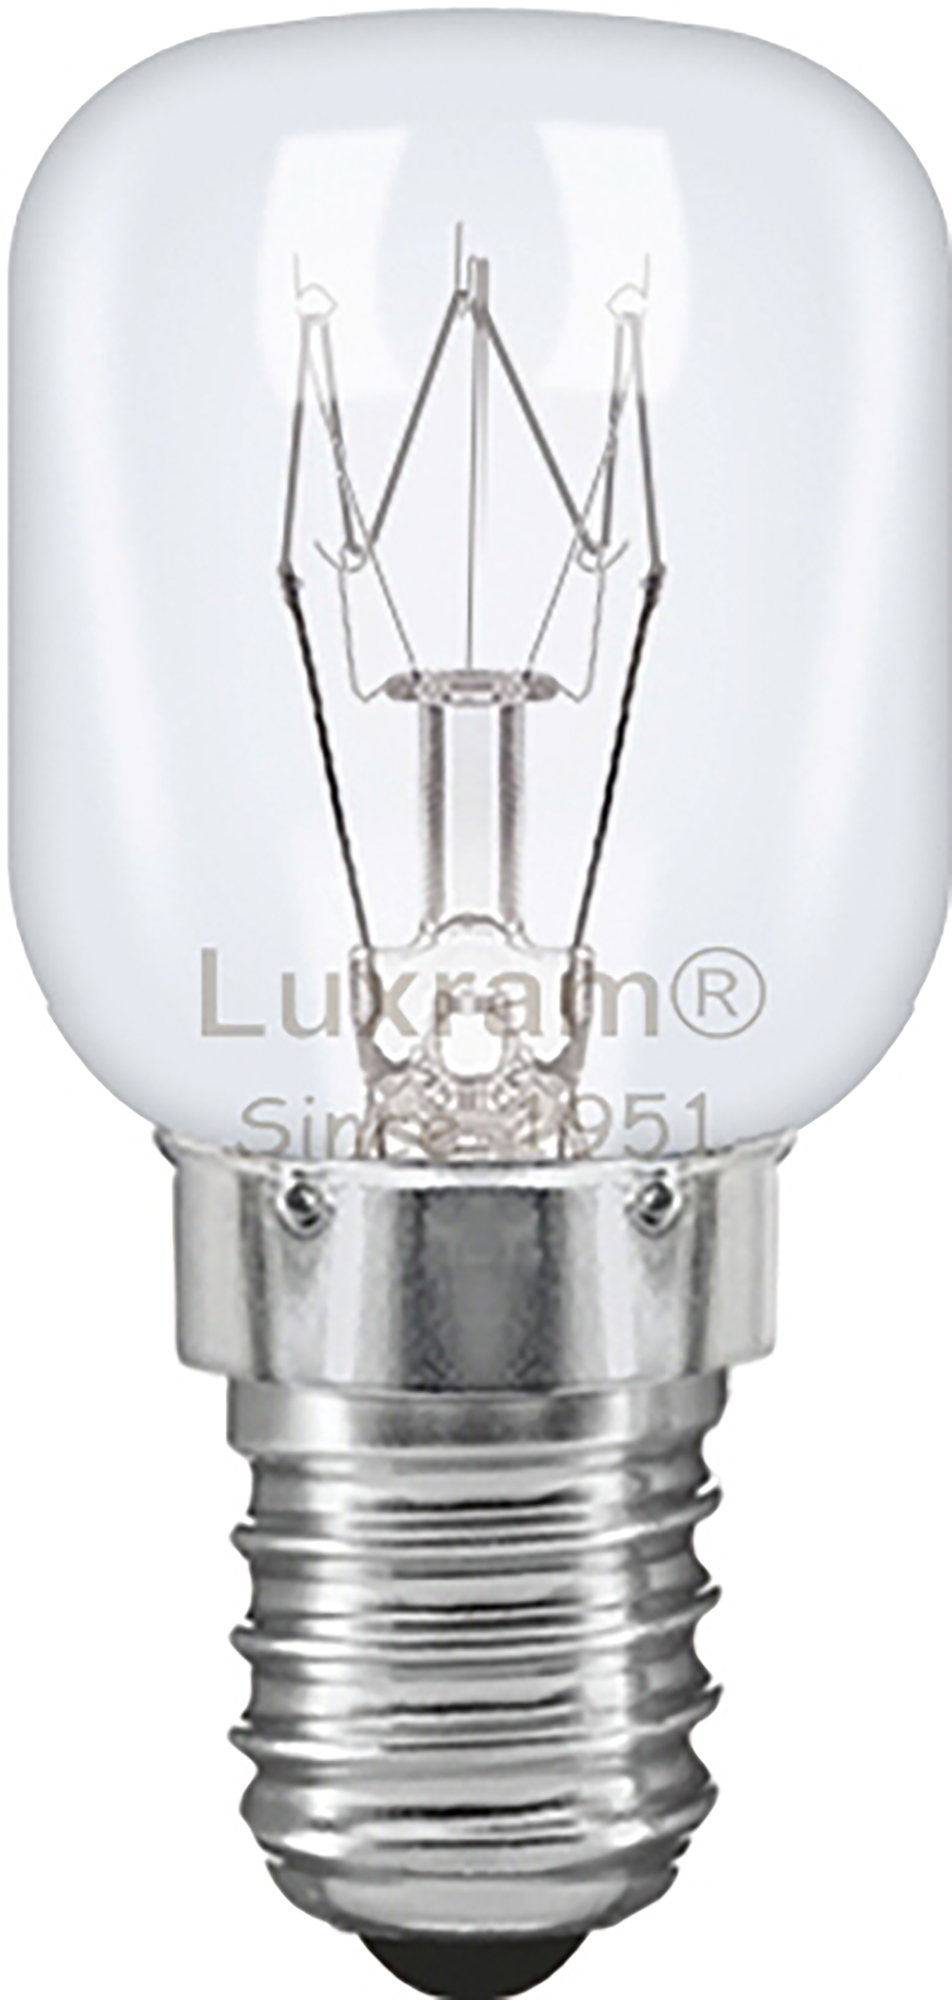 Special Oven Incandescent Luxram Pygmy & Appliance